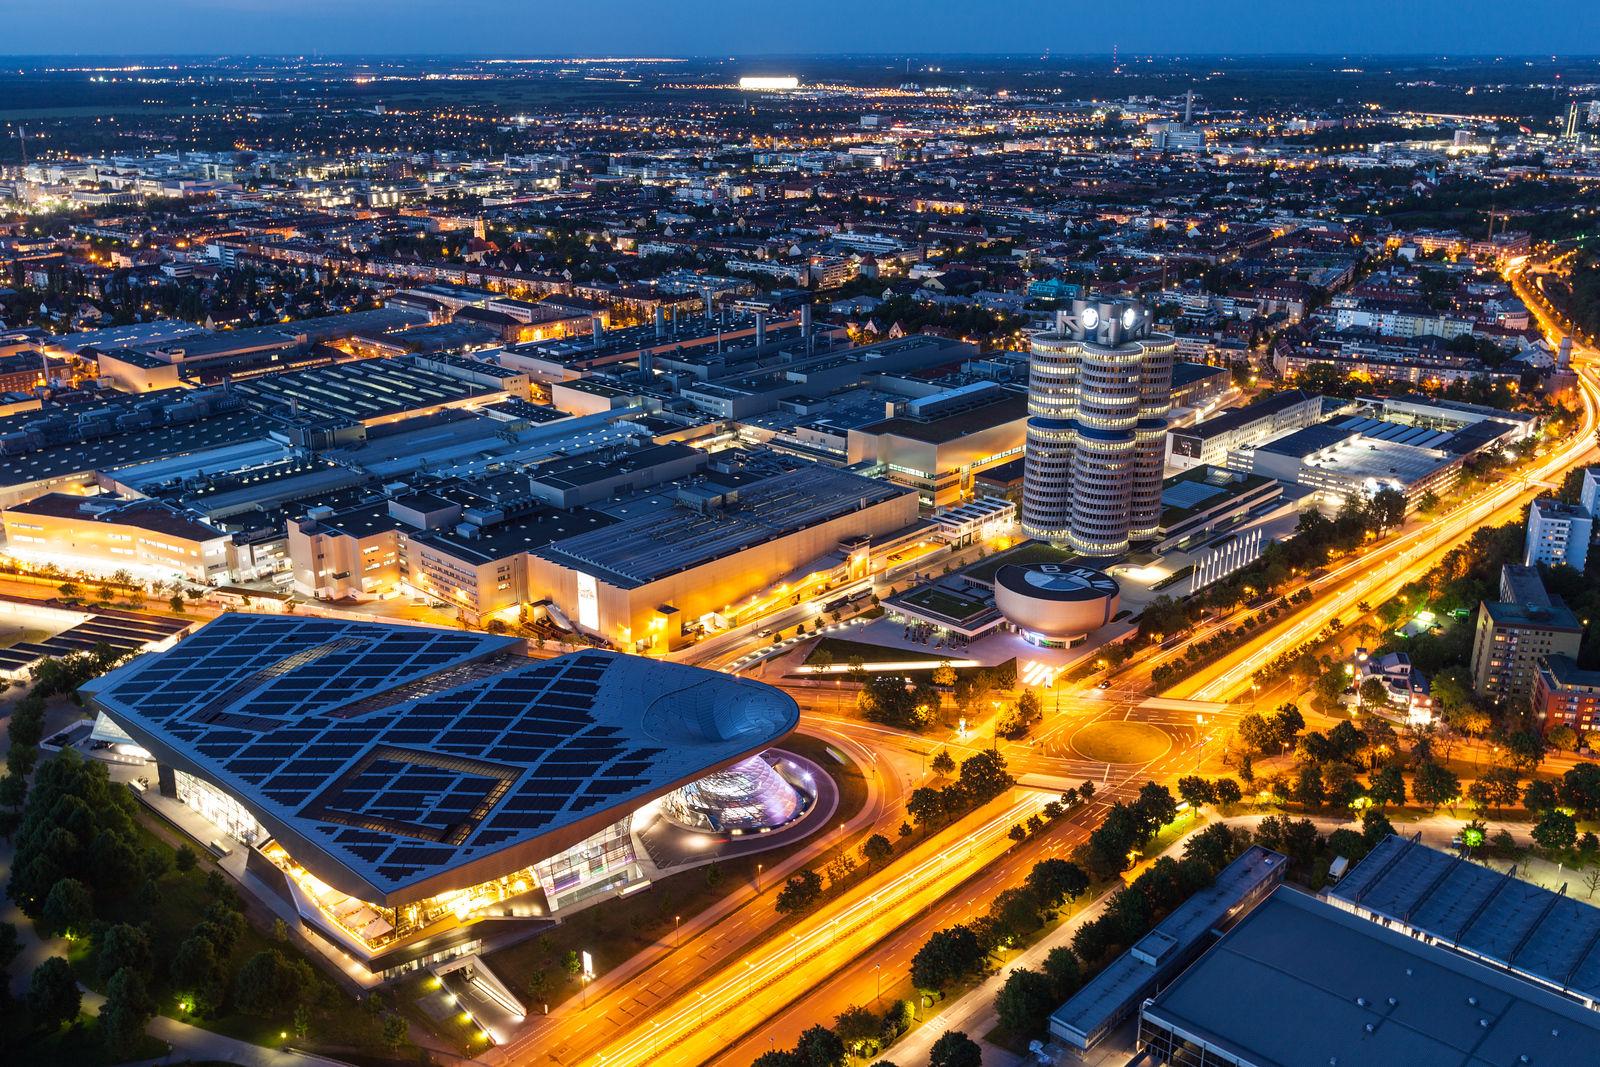 Aerial view of BMW Museum and BWM Welt and Munich from Olympic Tower in the evening on May 11, 2012 in Munich, Bavaria, Germany